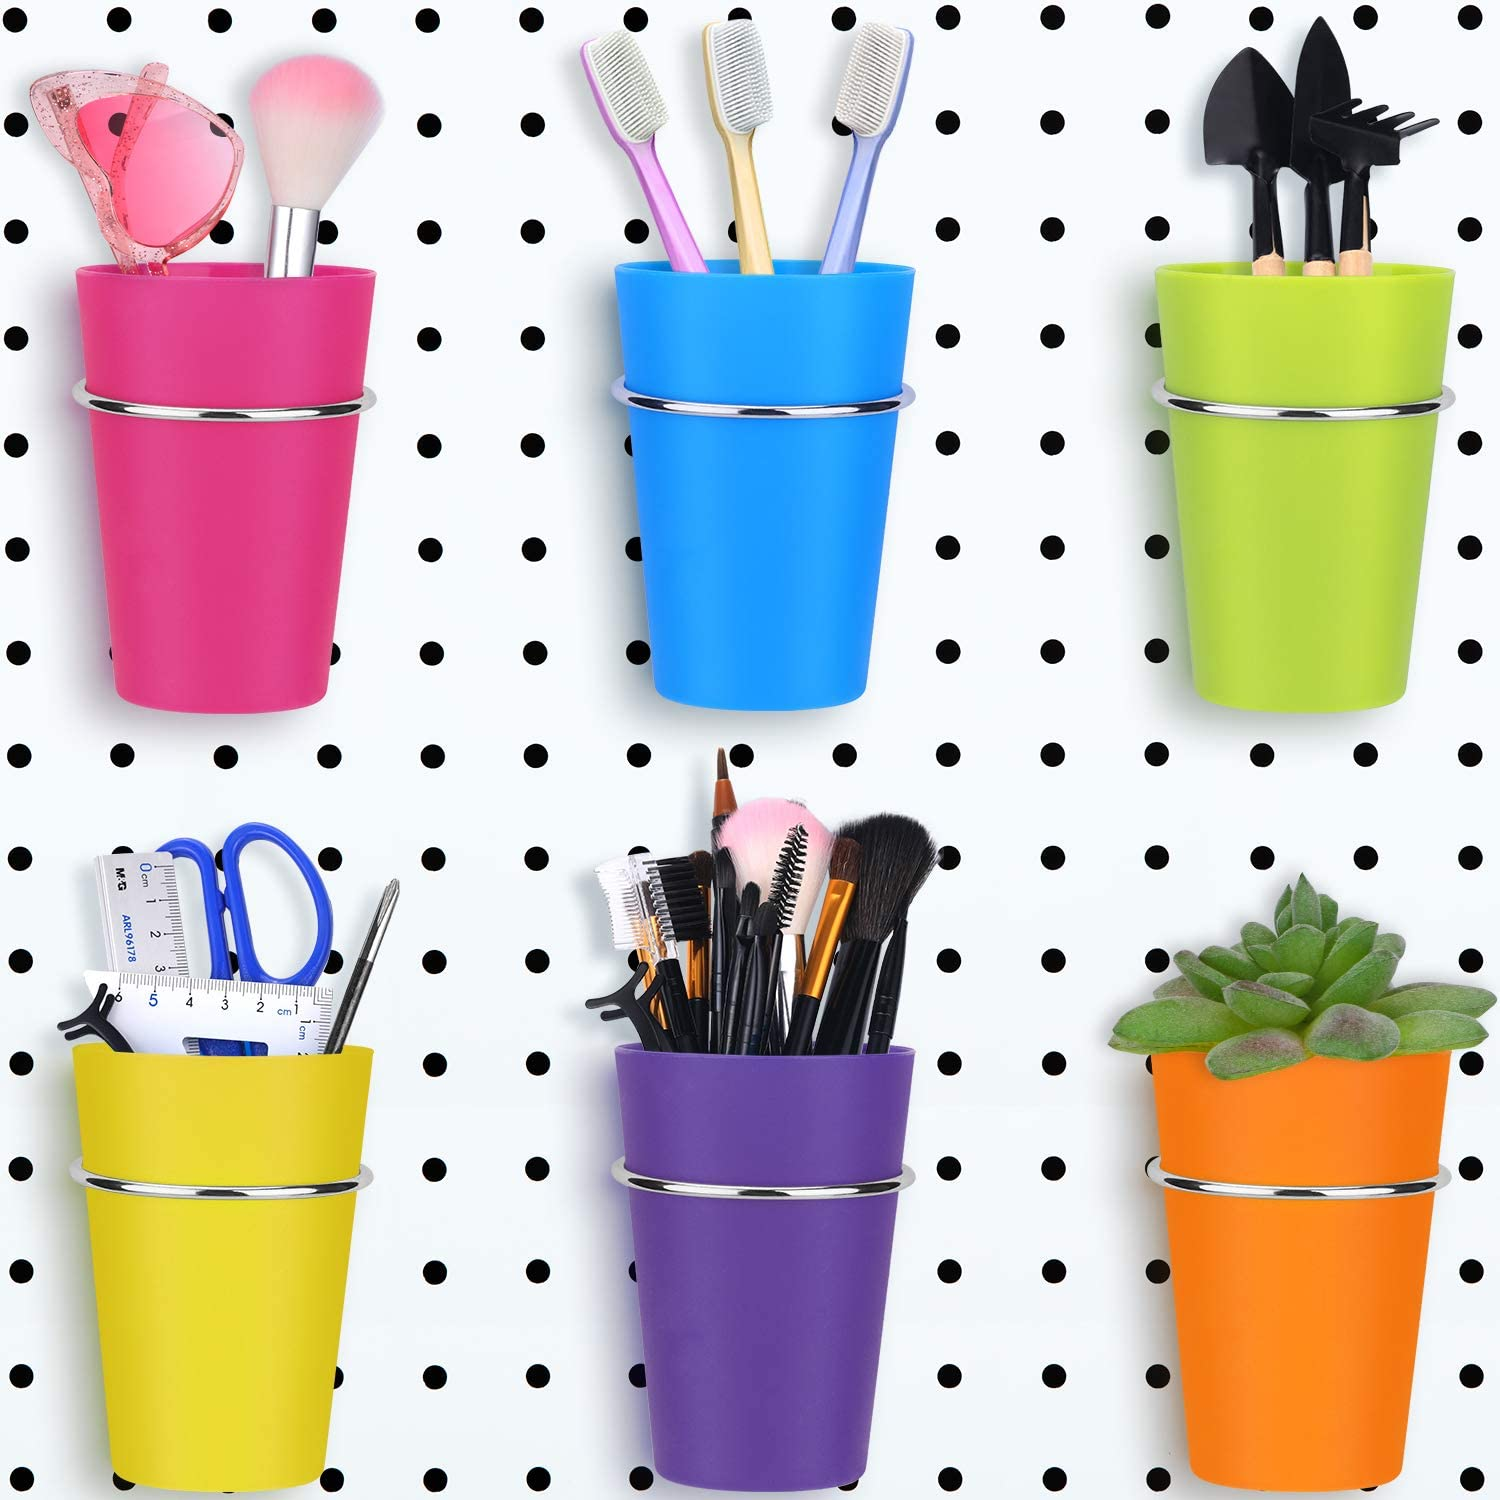 Metal Hooks Cups Holder Organizer Baskets For 4 Set Pegboard Bins With Rings